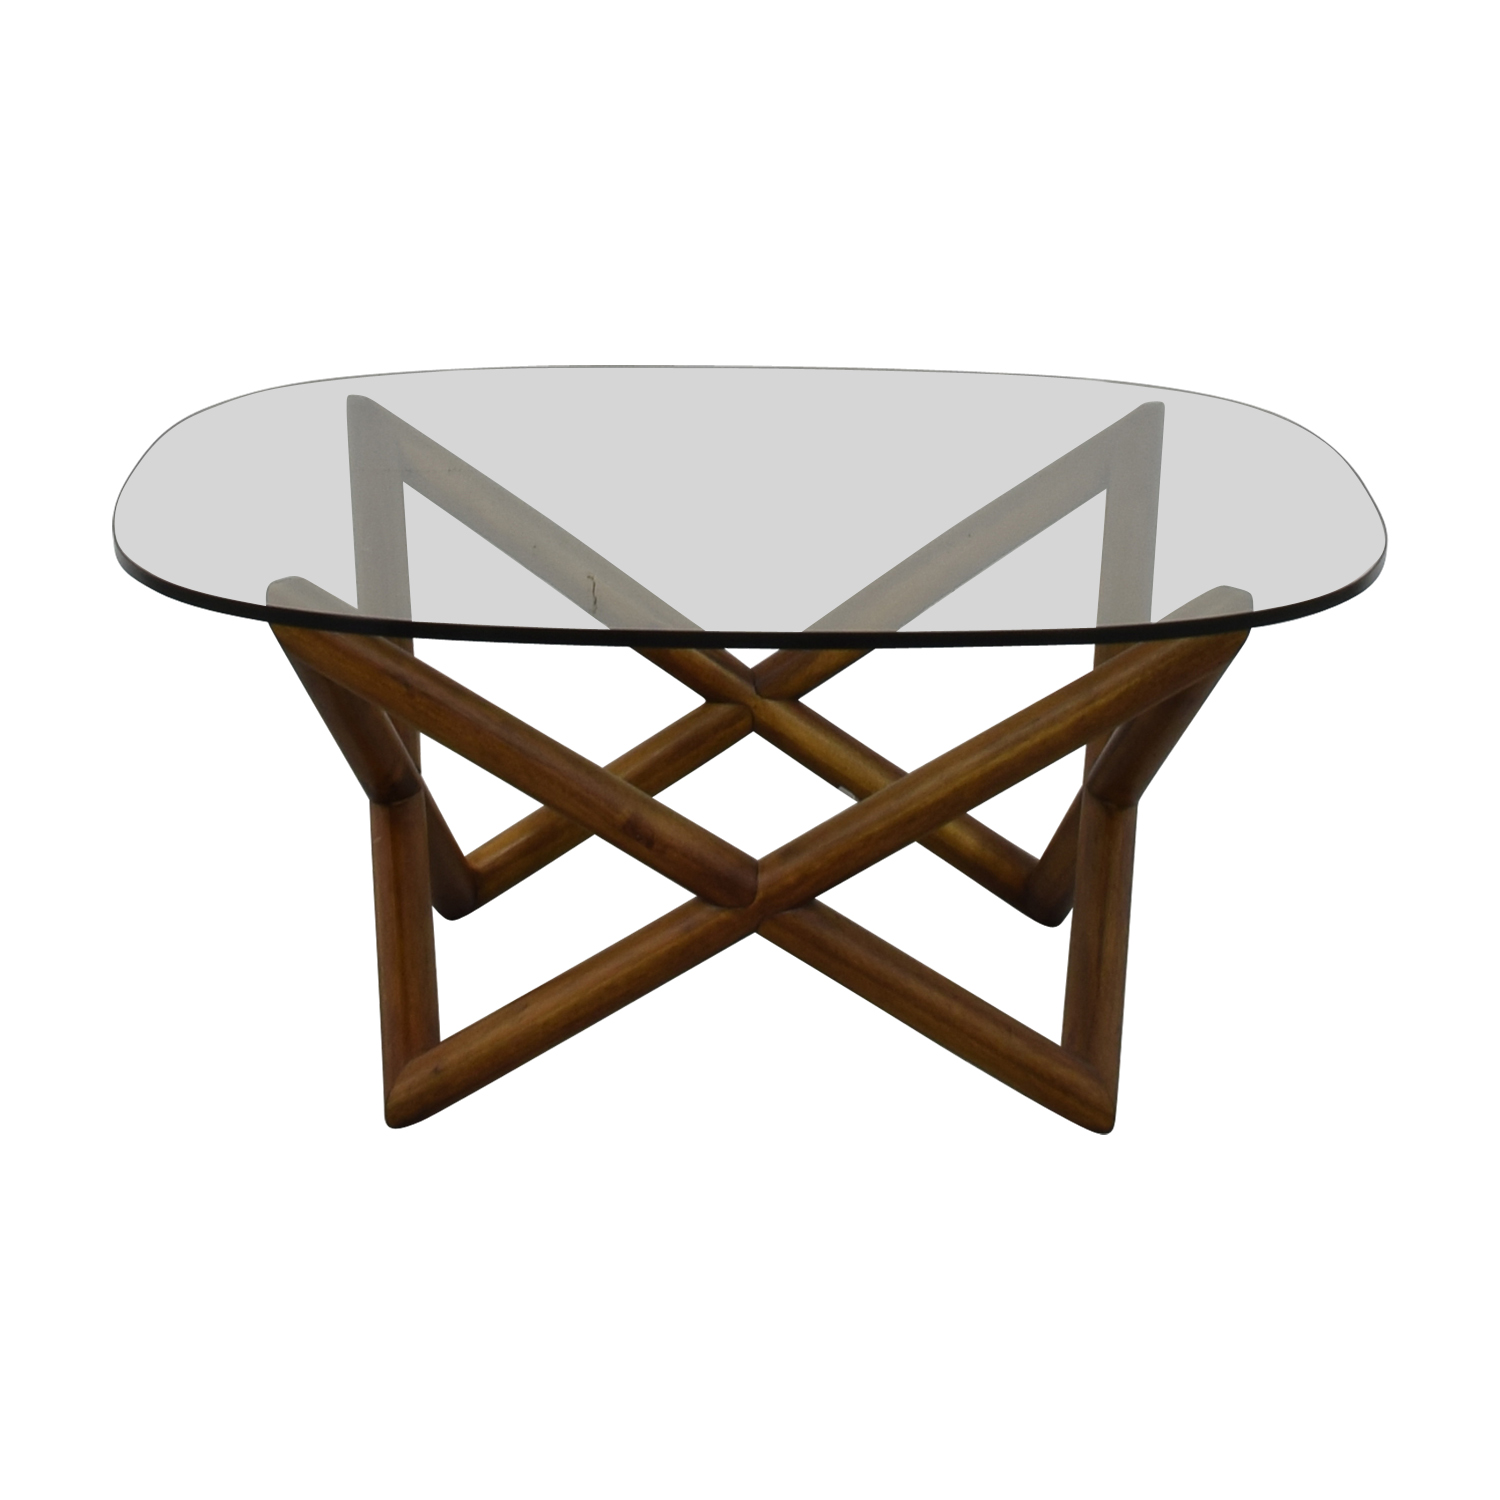 West Elm West Elm Round Glass and Wood Coffee Table Sofas